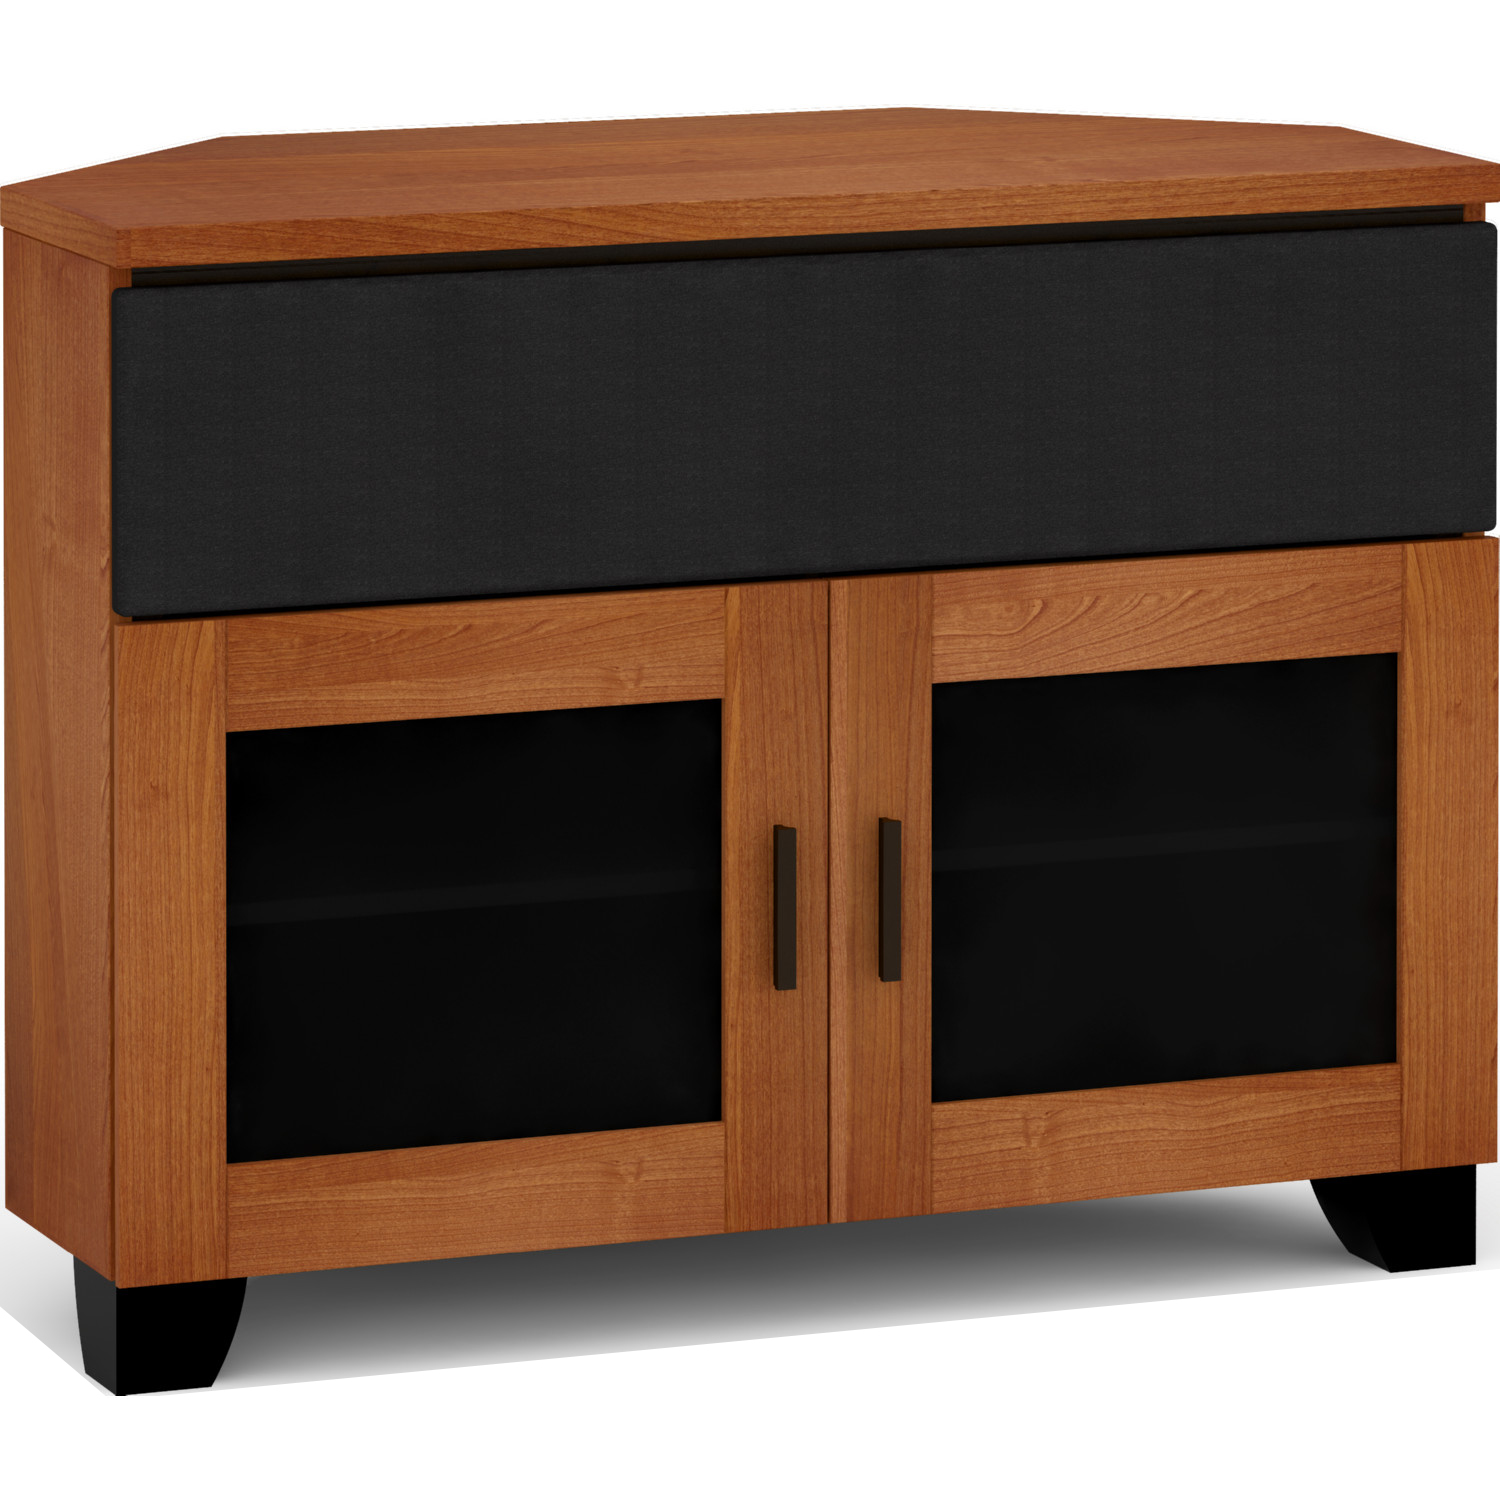 Picture of: Salamander Designs C El329cr Ac Elba 329cr 44 Extra Tall Corner Tv Stand Cabinet W Center Speaker Opening In American Cherry